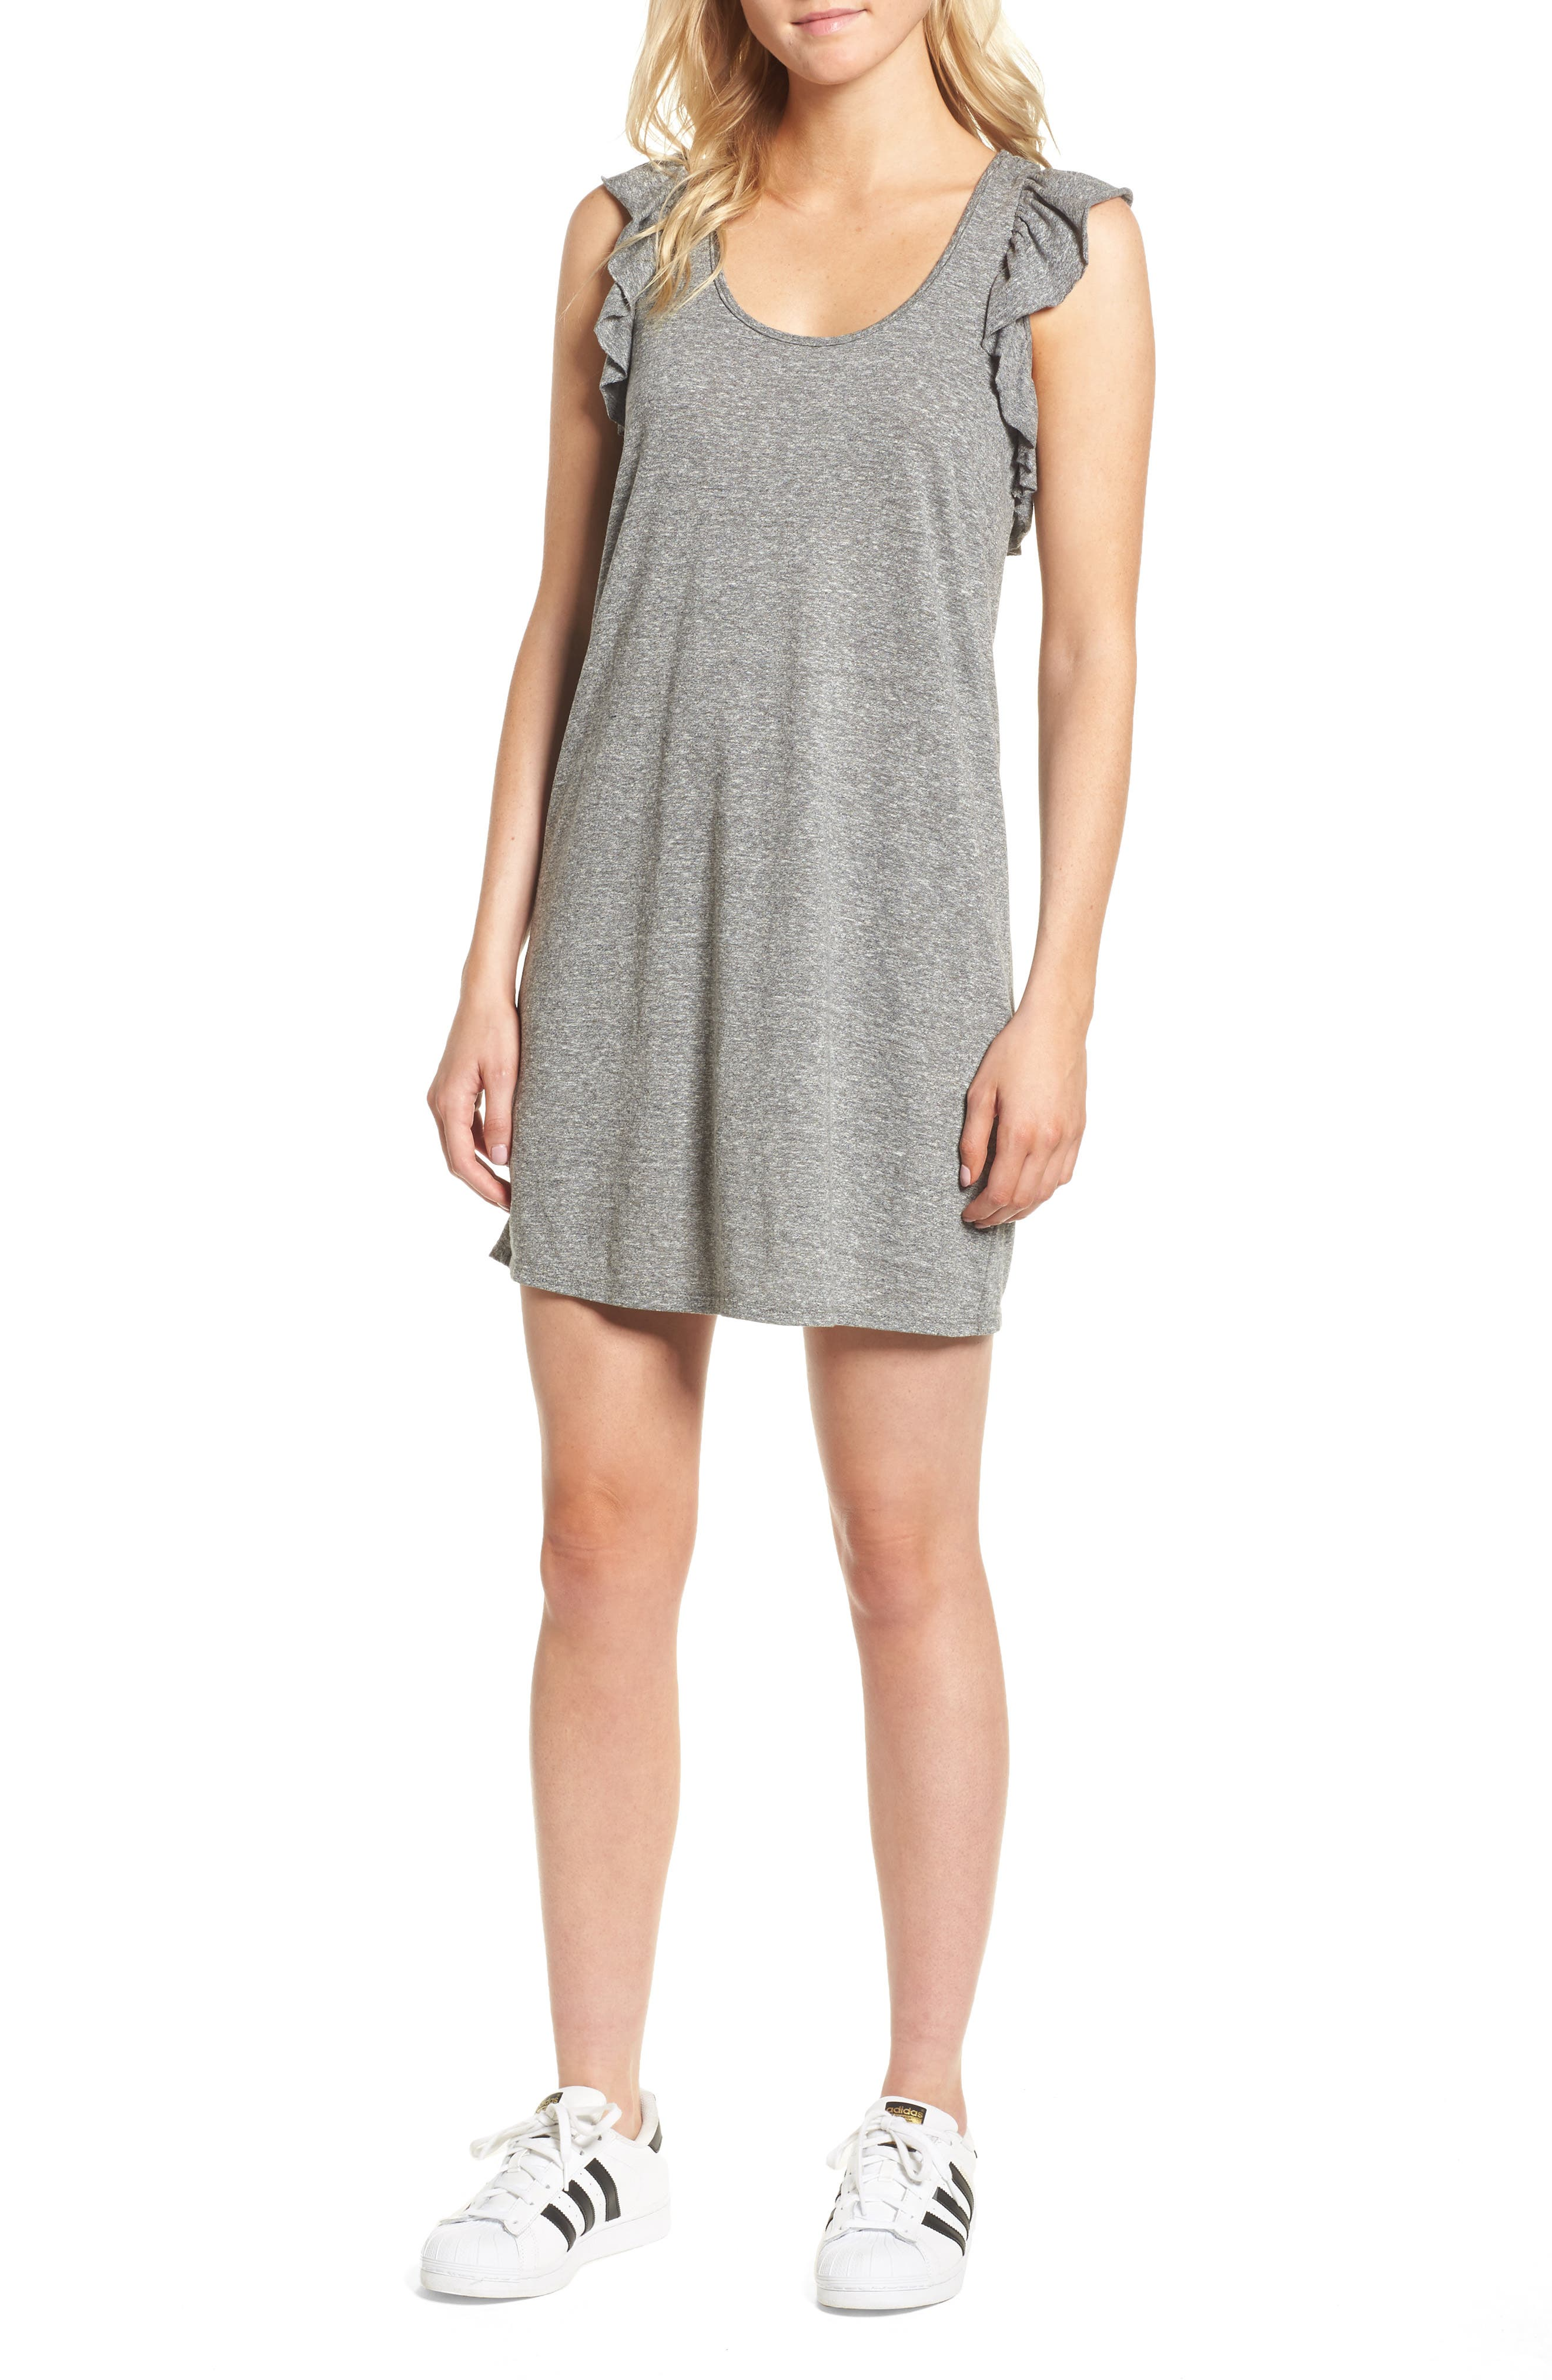 Current/Elliott The Cadence Racerback Dress